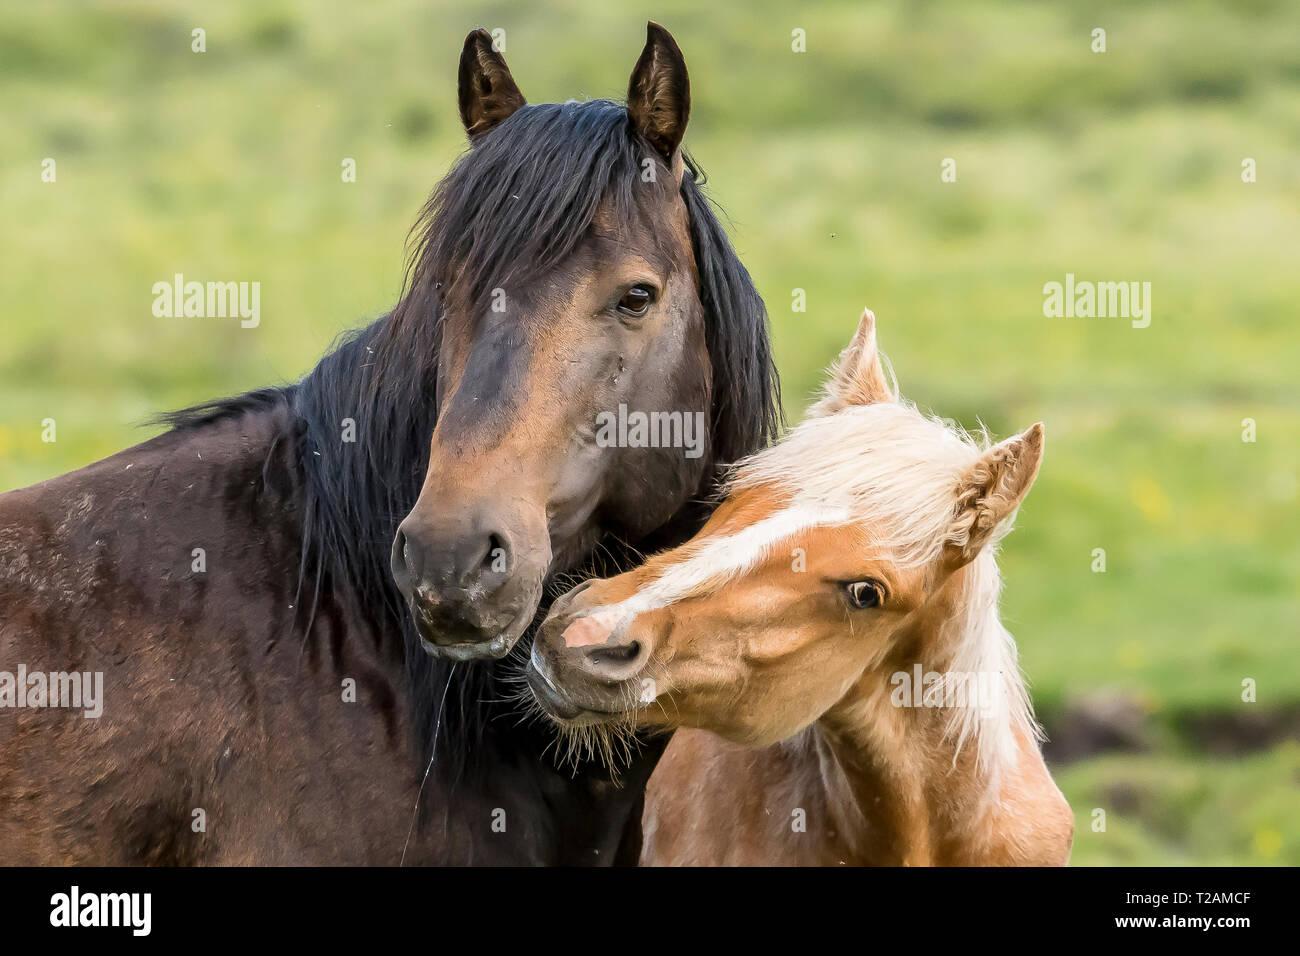 Wild/feral horses live in the Rocky Mountains of Canada in the province of Alberta.  This stallion and mare parade with their young foal in the lush g - Stock Image